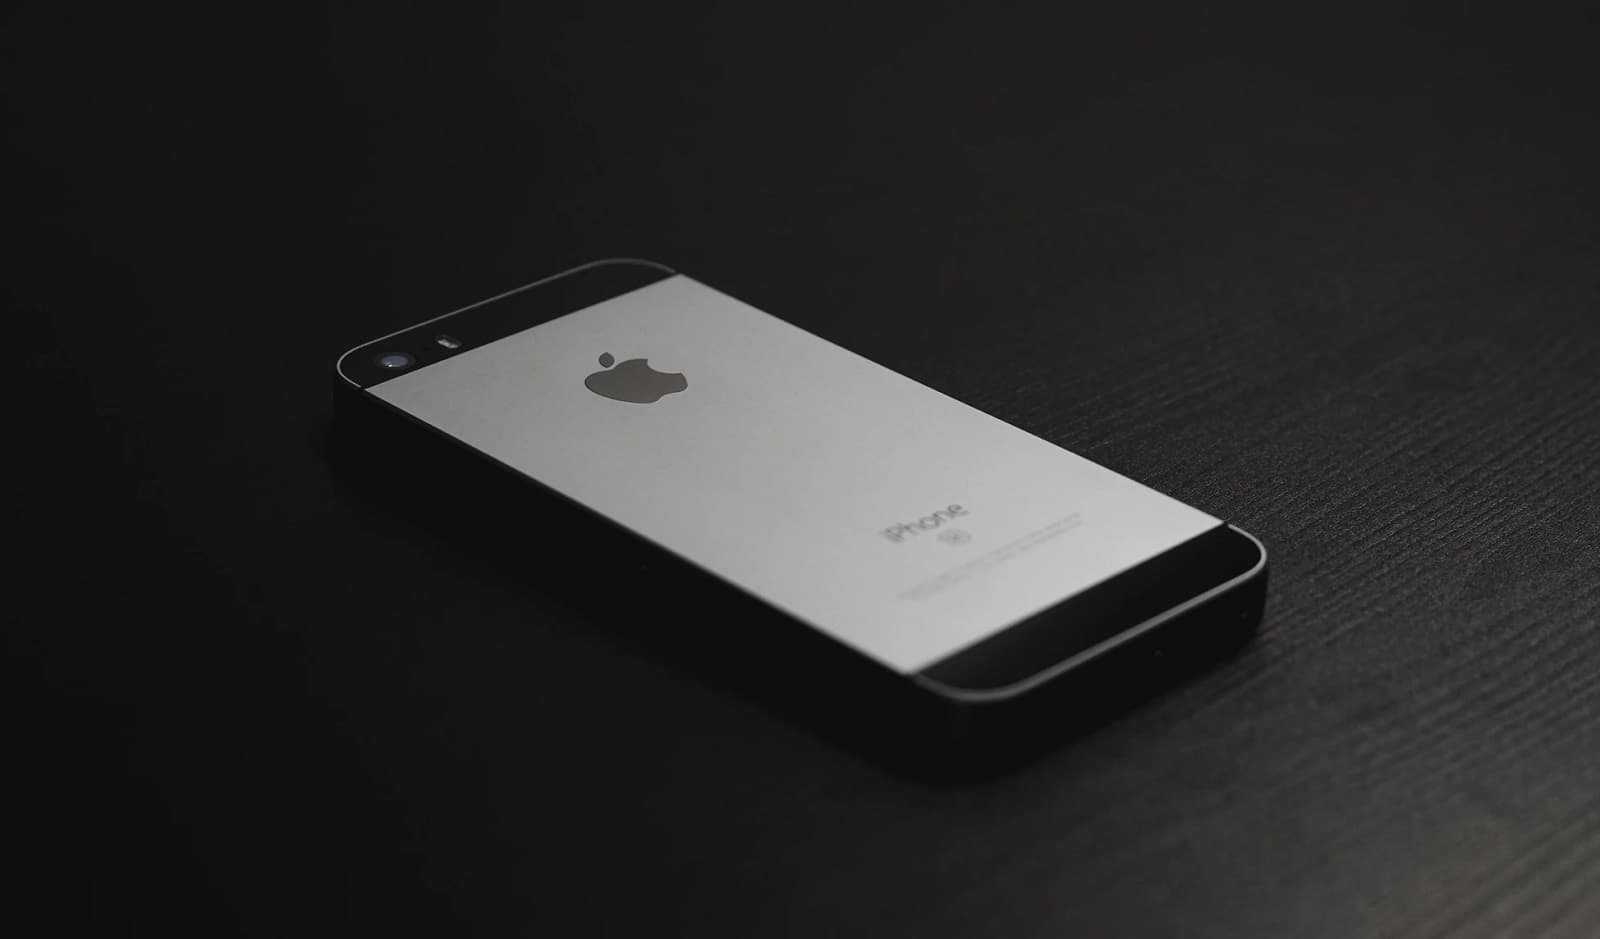 iphone 5 on table